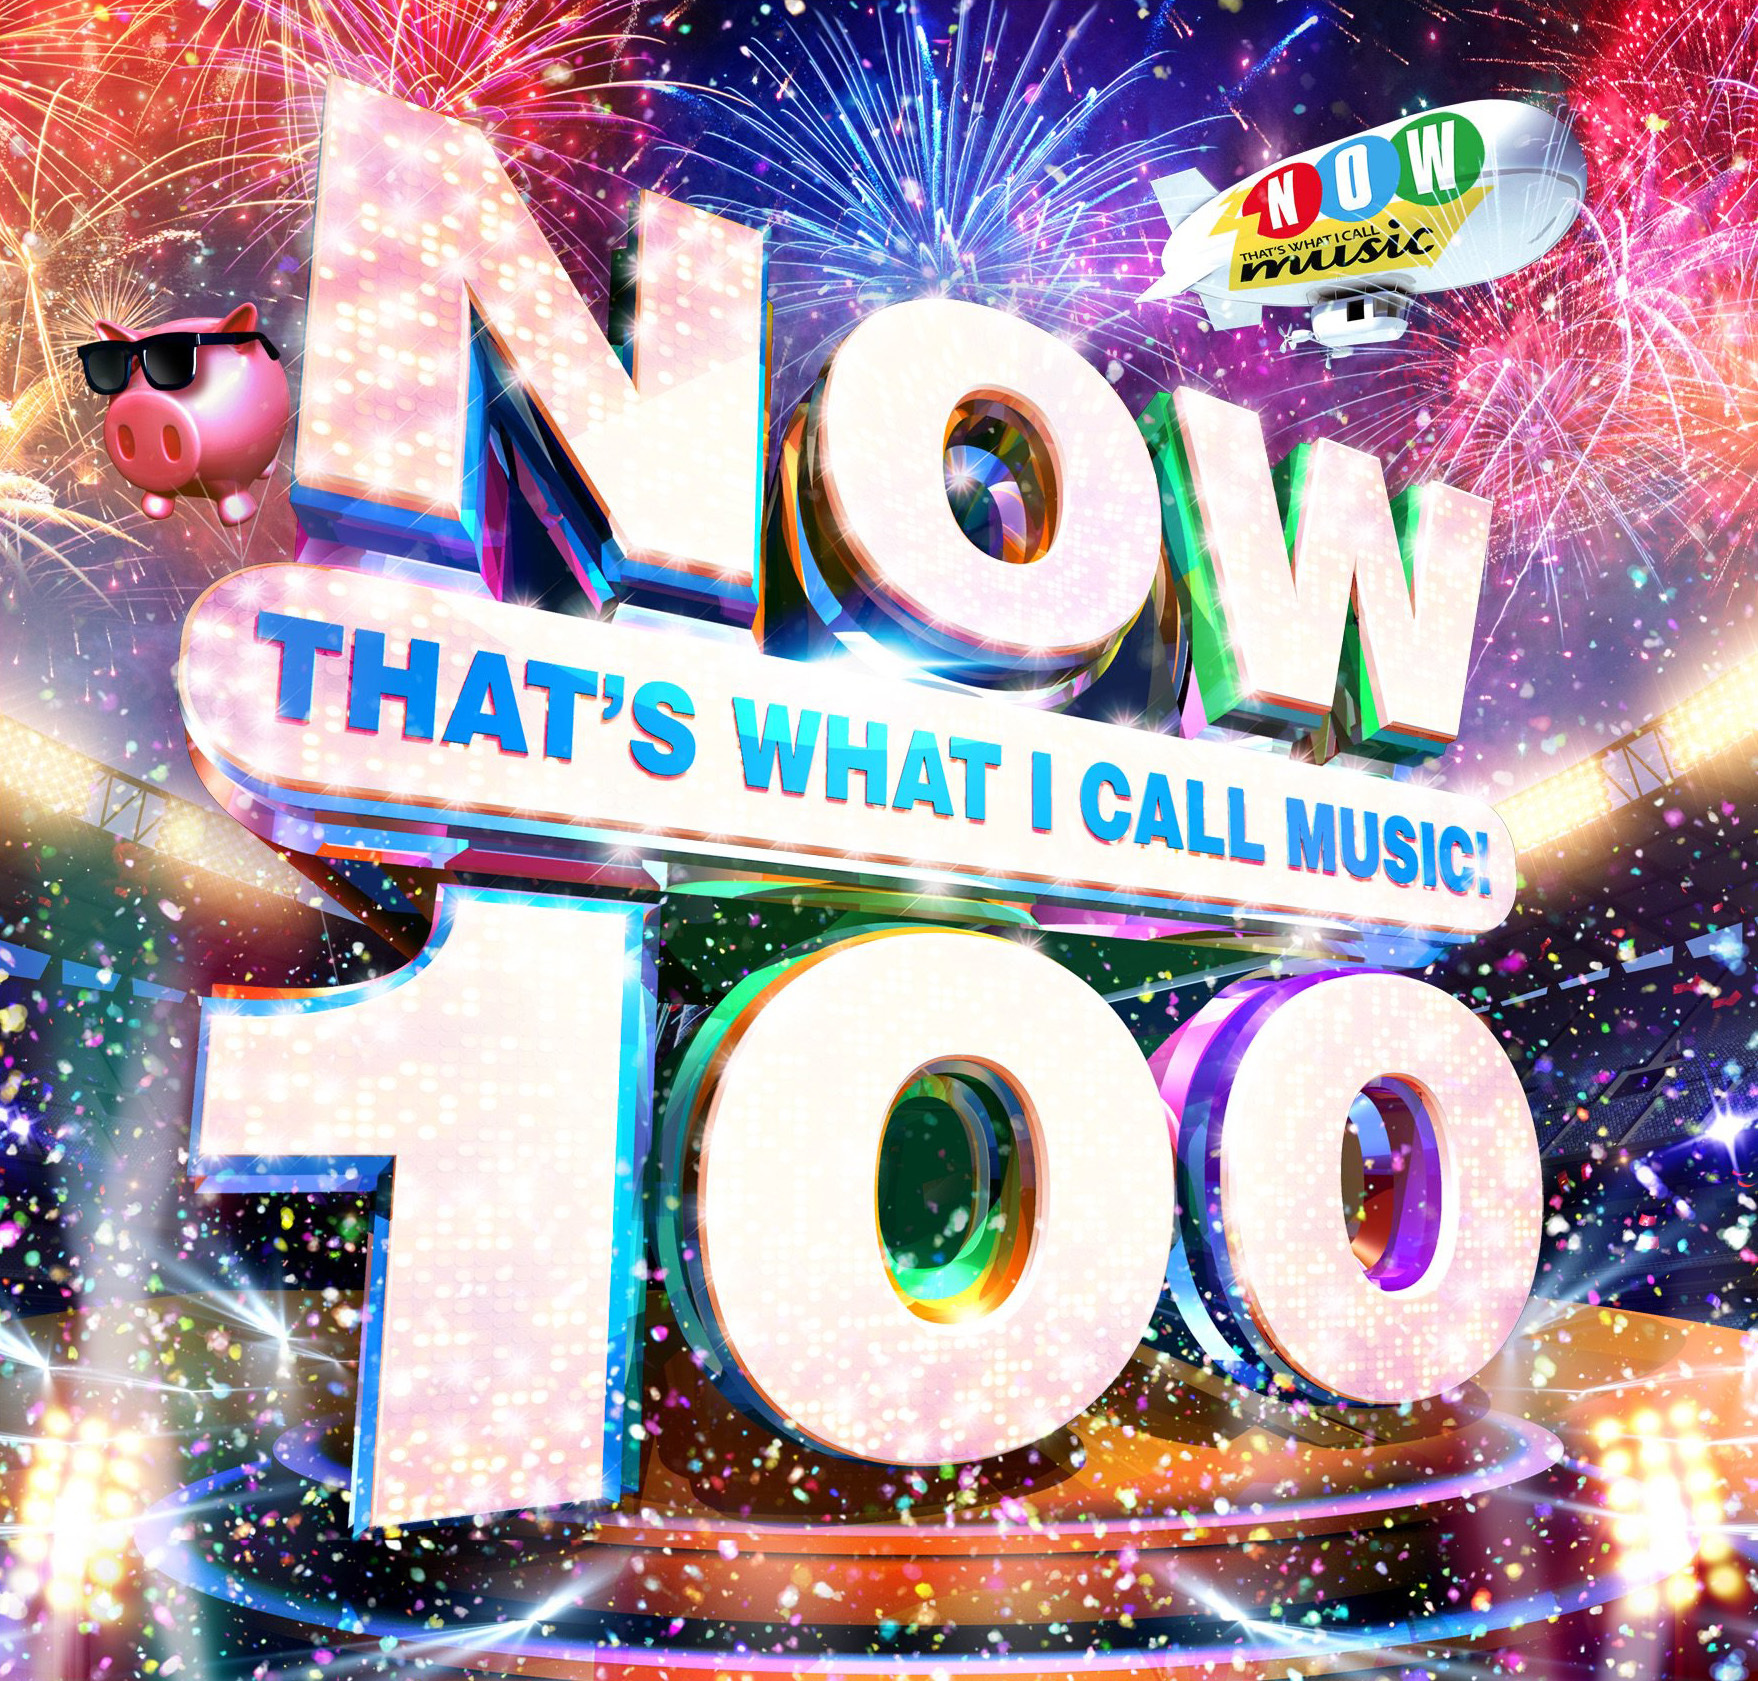 The front cover of NOW 100